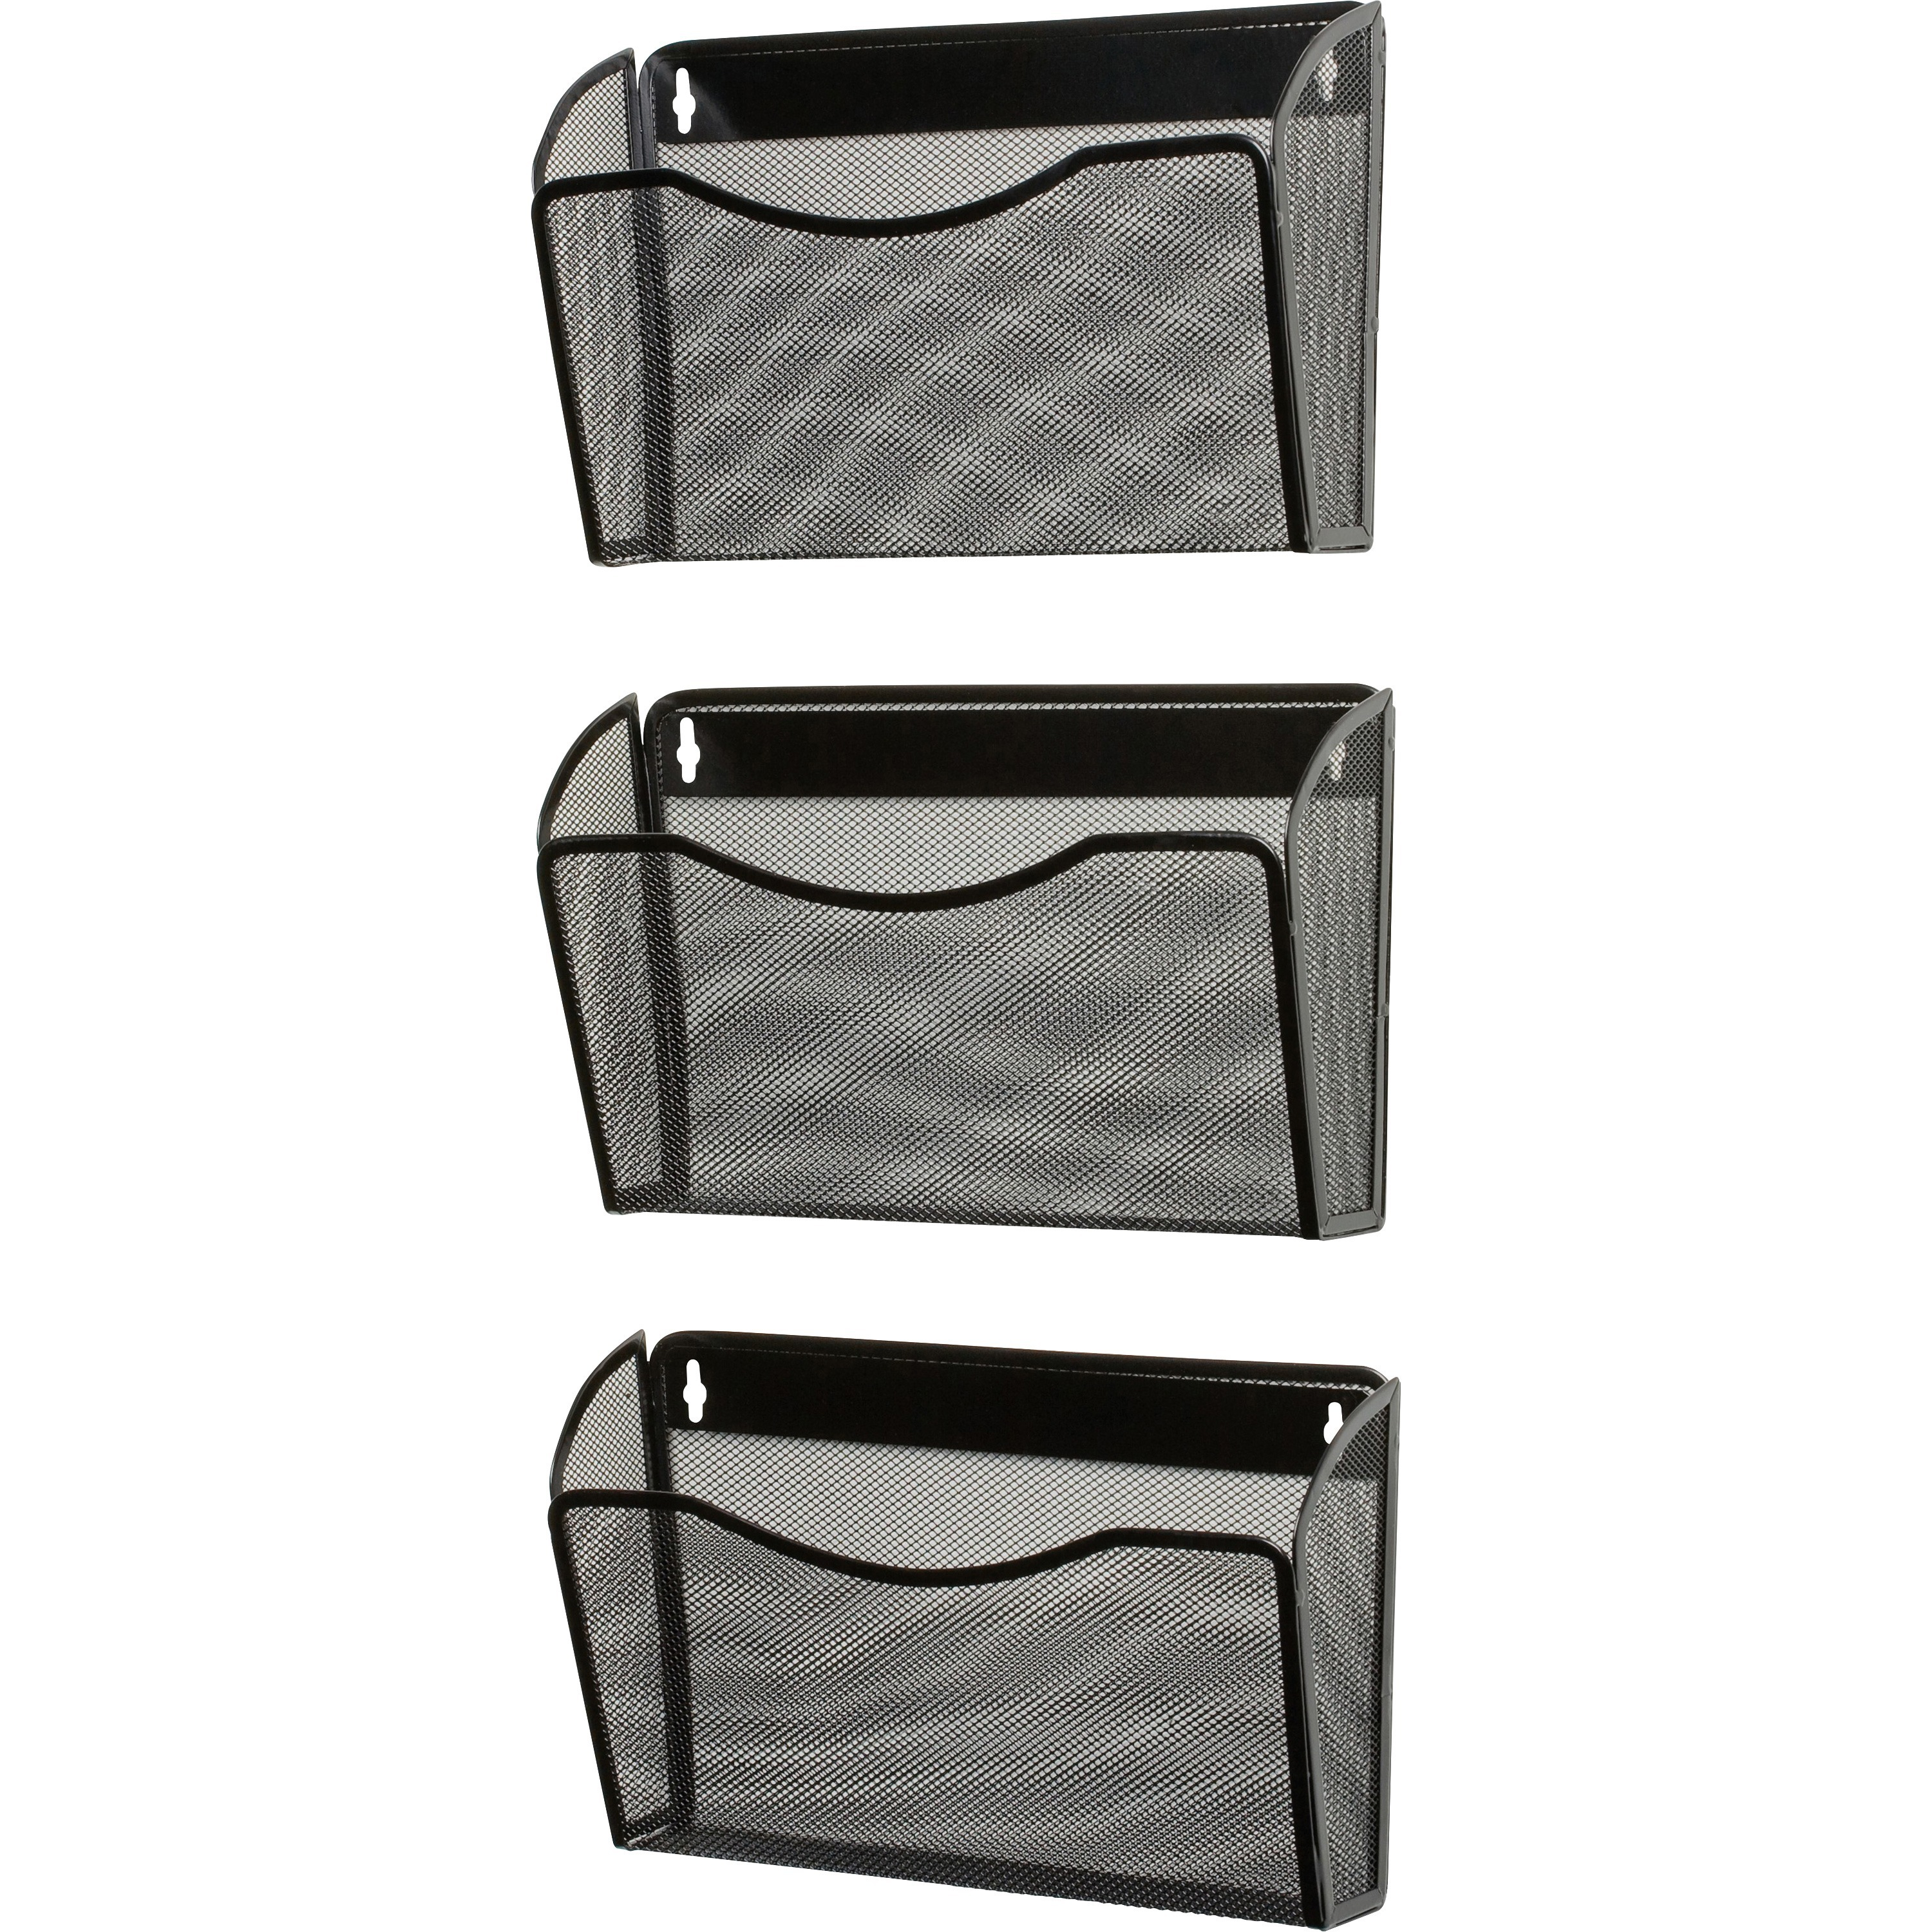 Rolodex Expressions Mesh 3 Pack Hanging Wall Files Pocket S 33 5 Height X 14 Width 6 Depth Mountable Black Steel 1each